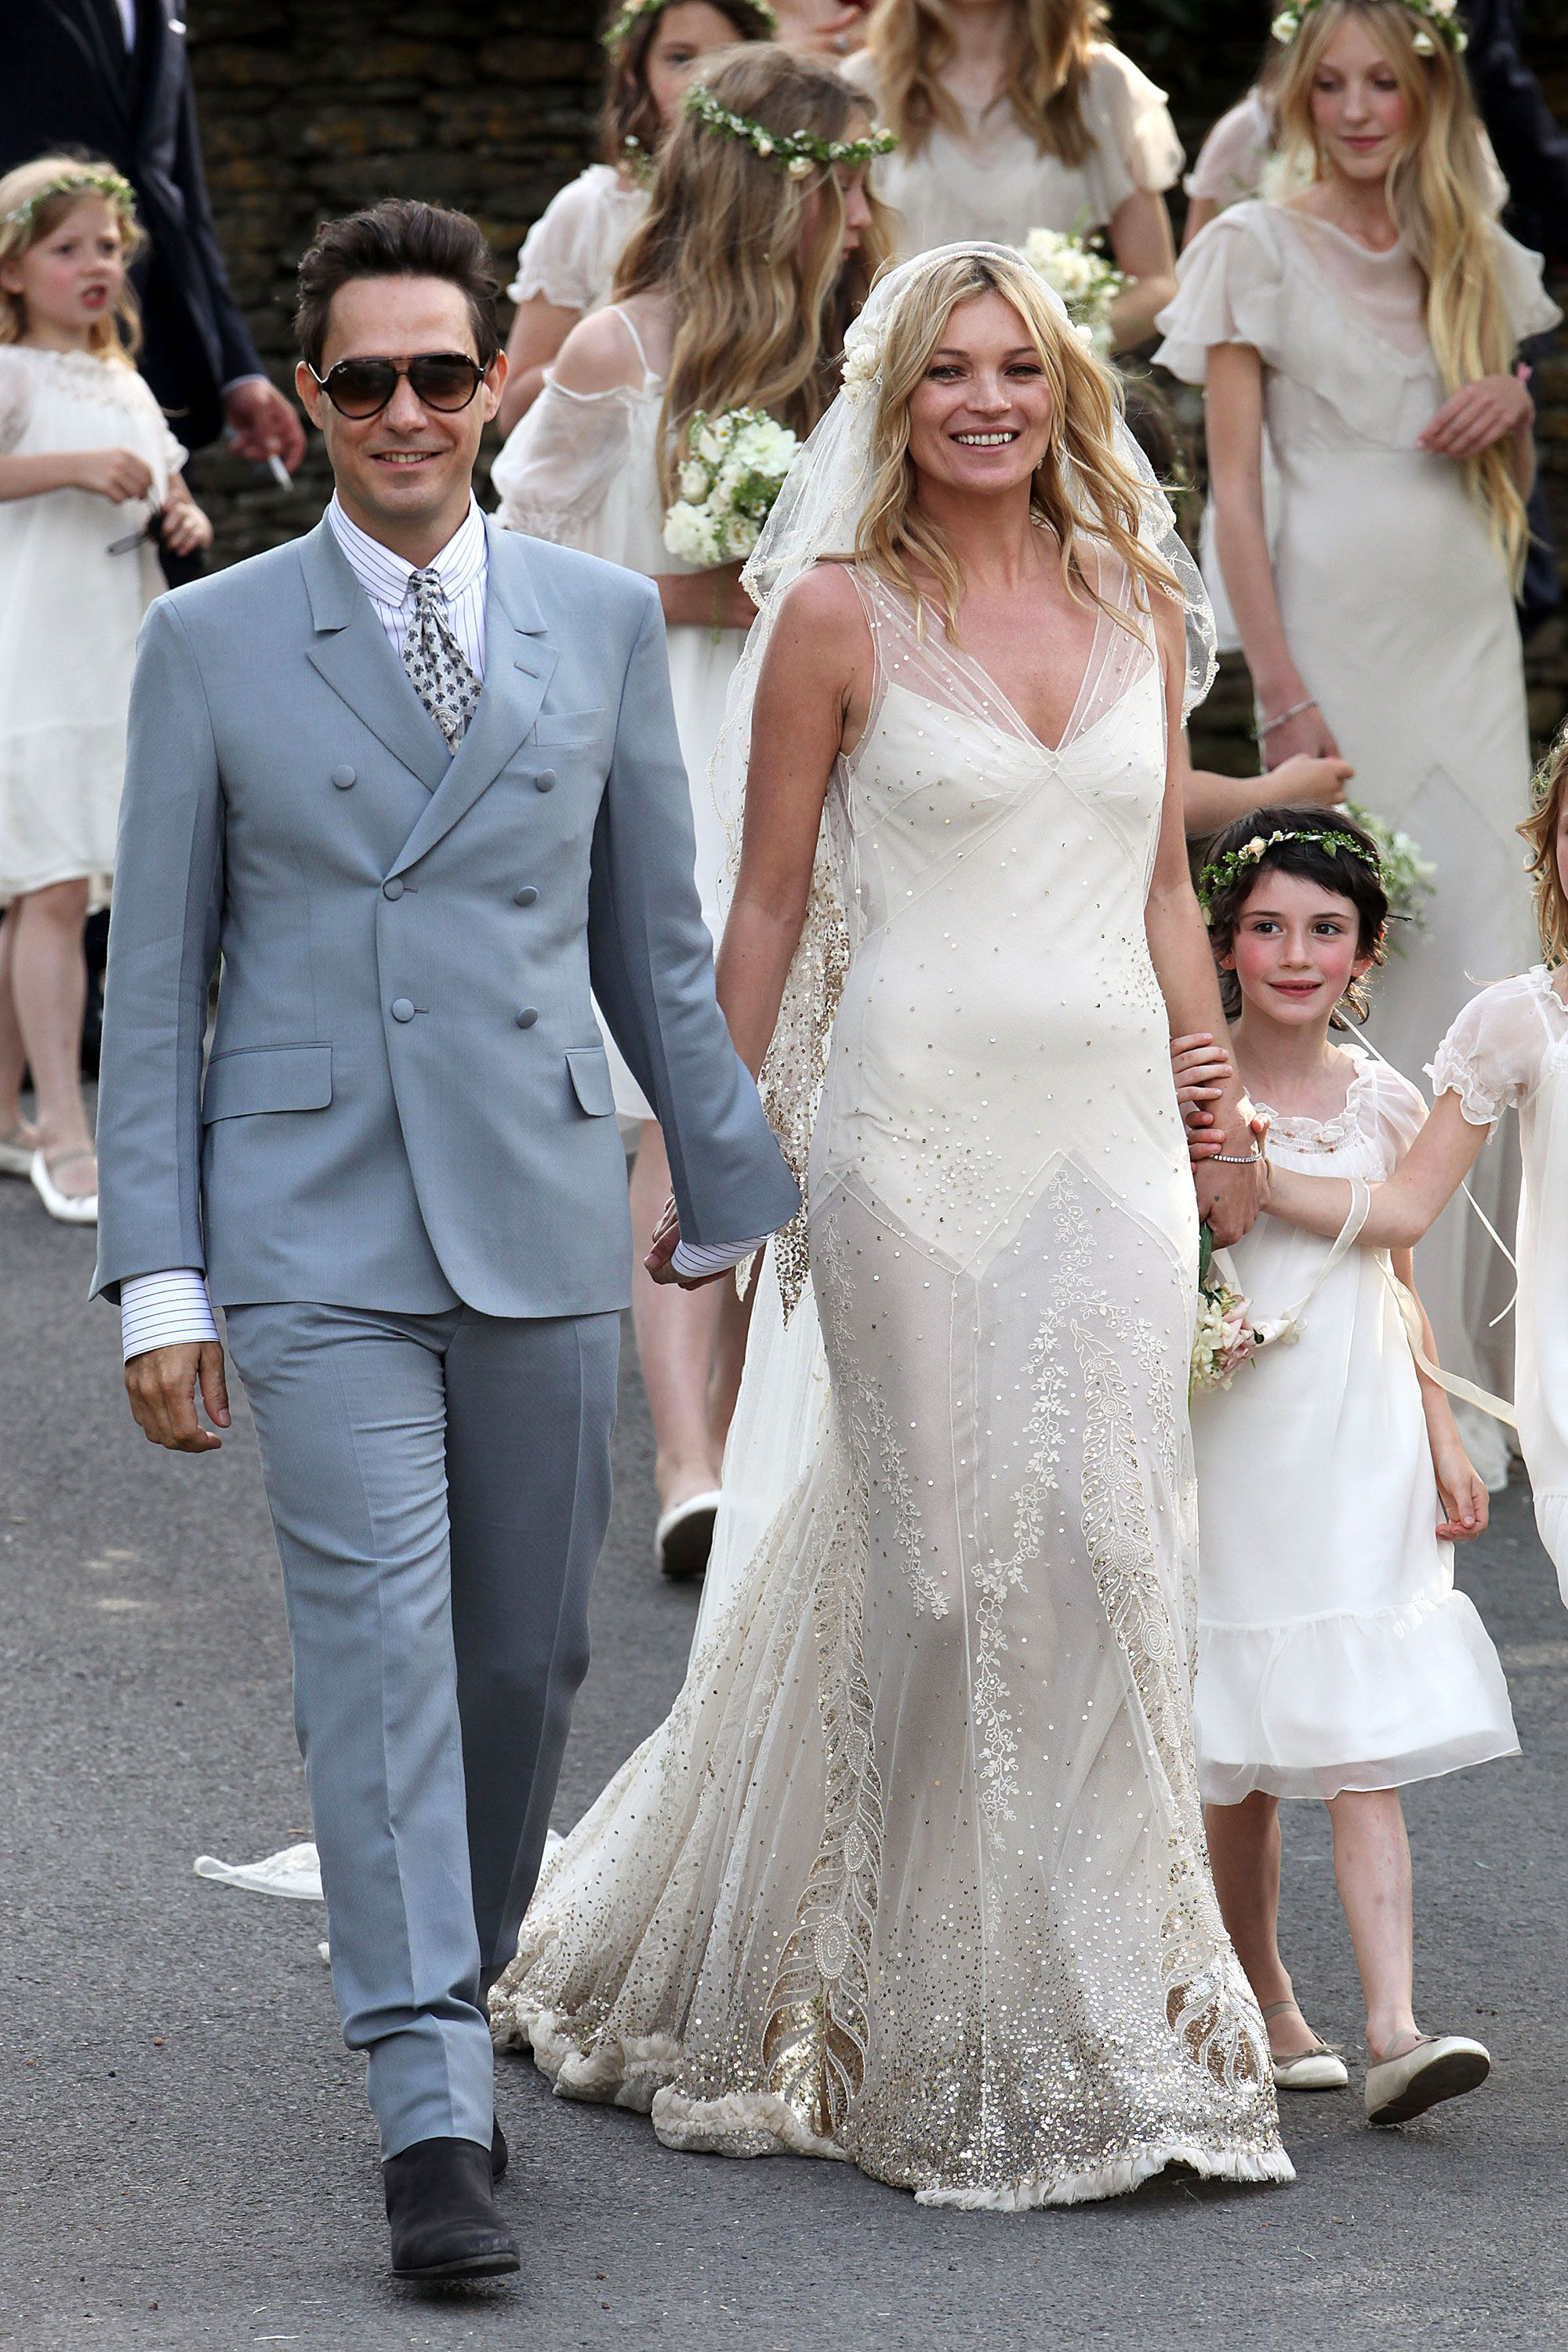 3c3abfb4c6fea 10 Iconic Wedding Gowns - Kate Moss in John Galliano 2011